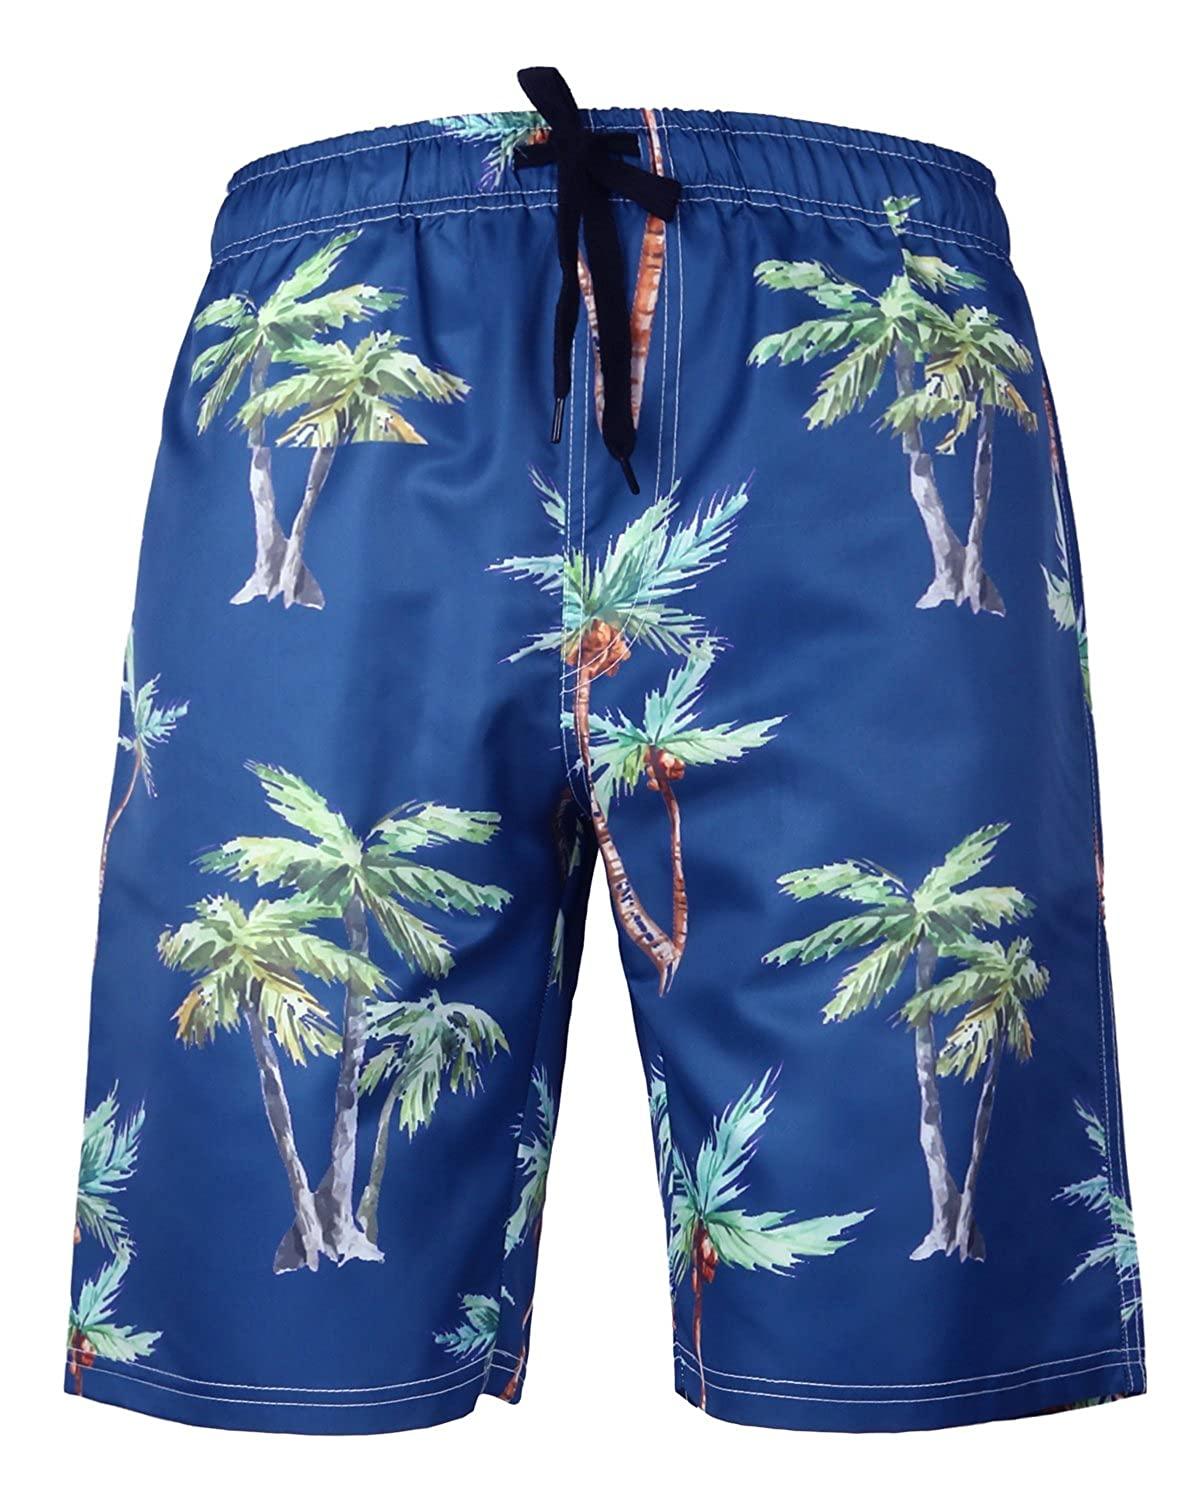 HONG DI HAO Mens Swim Trunks Quick Dry Swimming Trucks Men Big Tall Beach Shorts